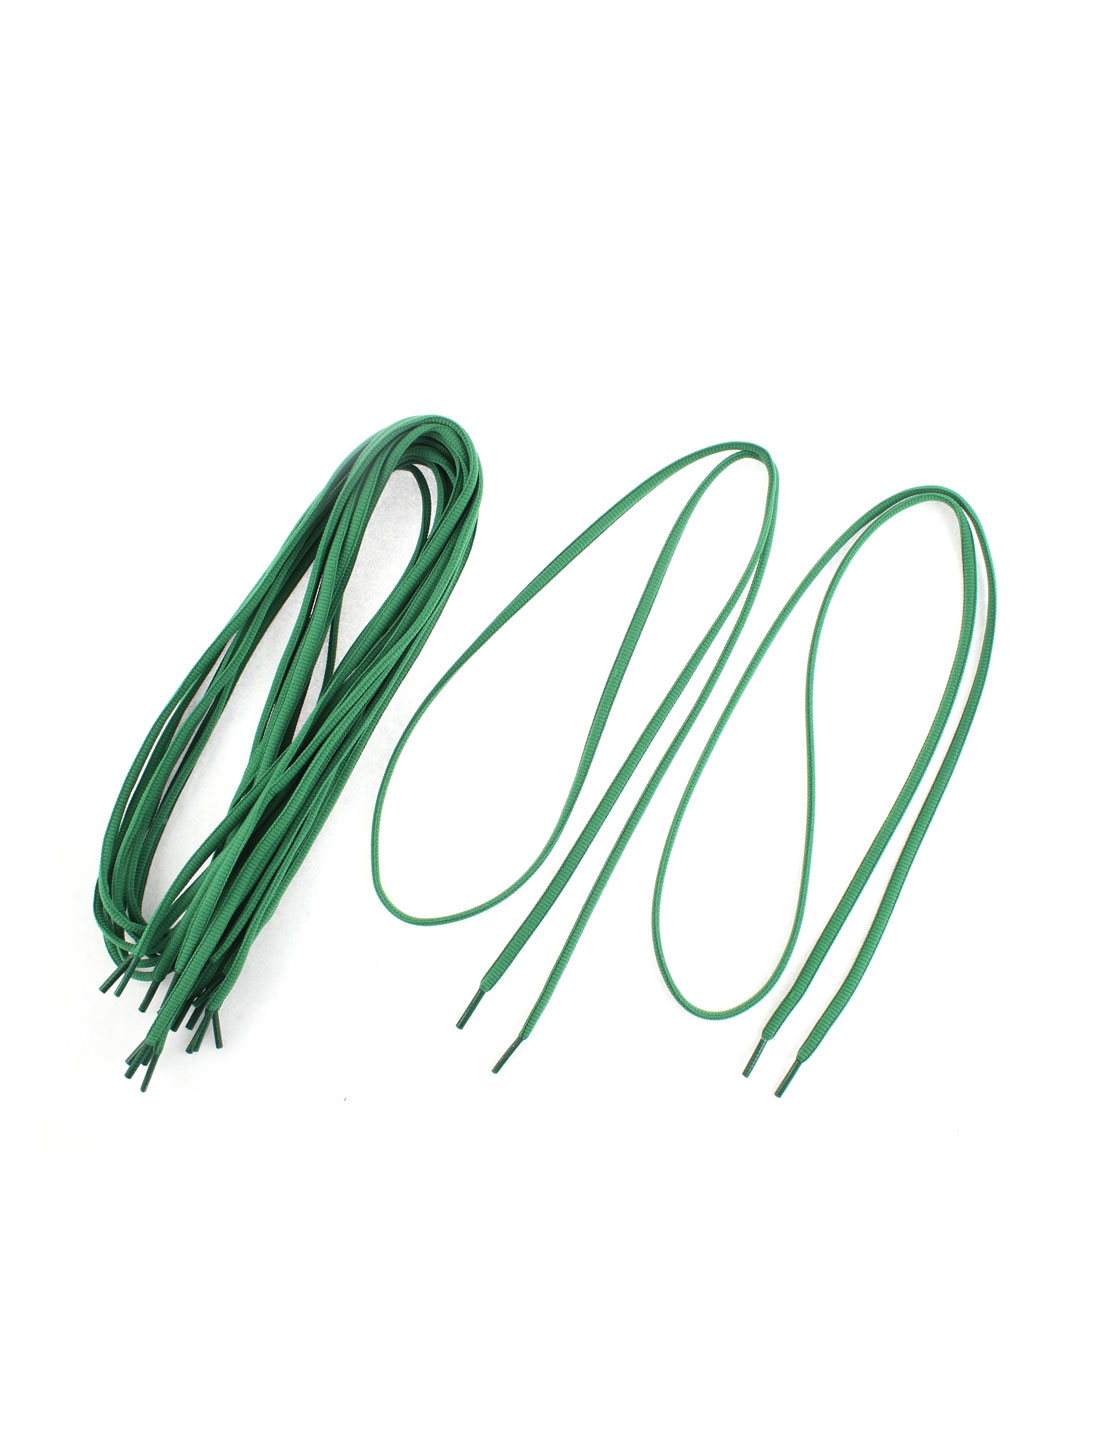 Athletic Sport Canvas Shoes Shoelaces String Dark Green 5 Pairs